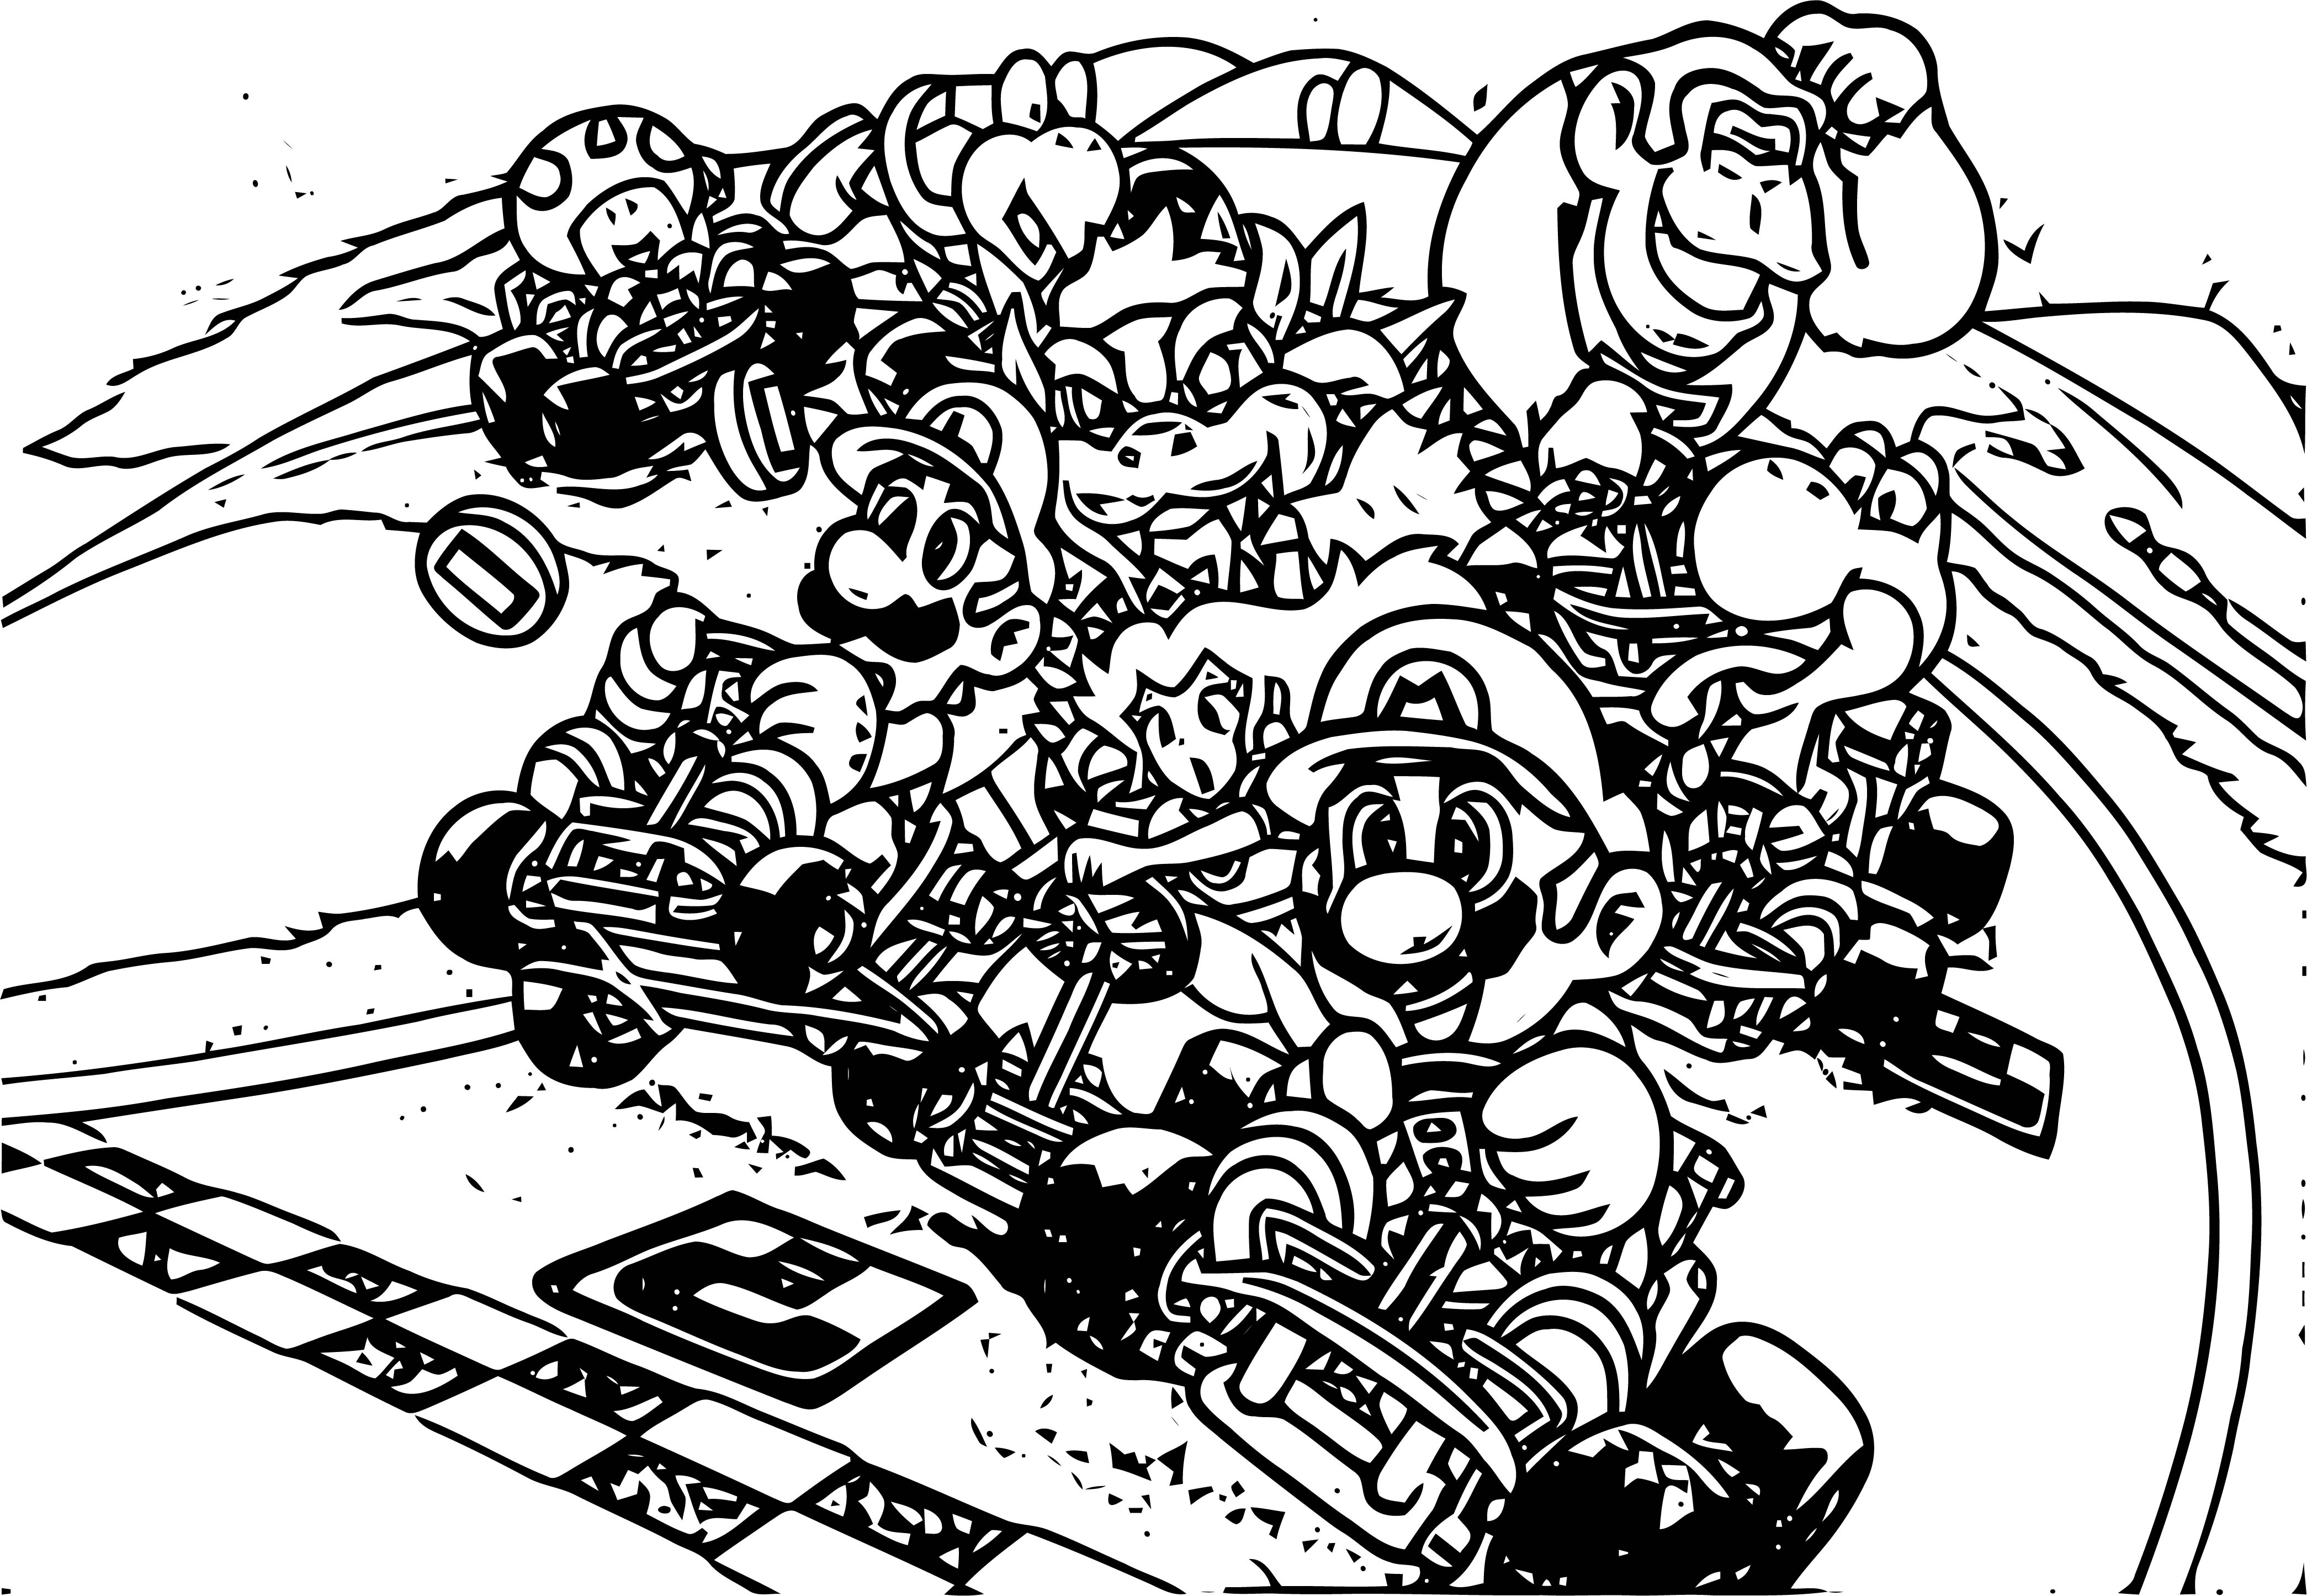 coloring pages of mario kart wii mario kart 8 coloring pages free download best mario mario pages of wii kart coloring